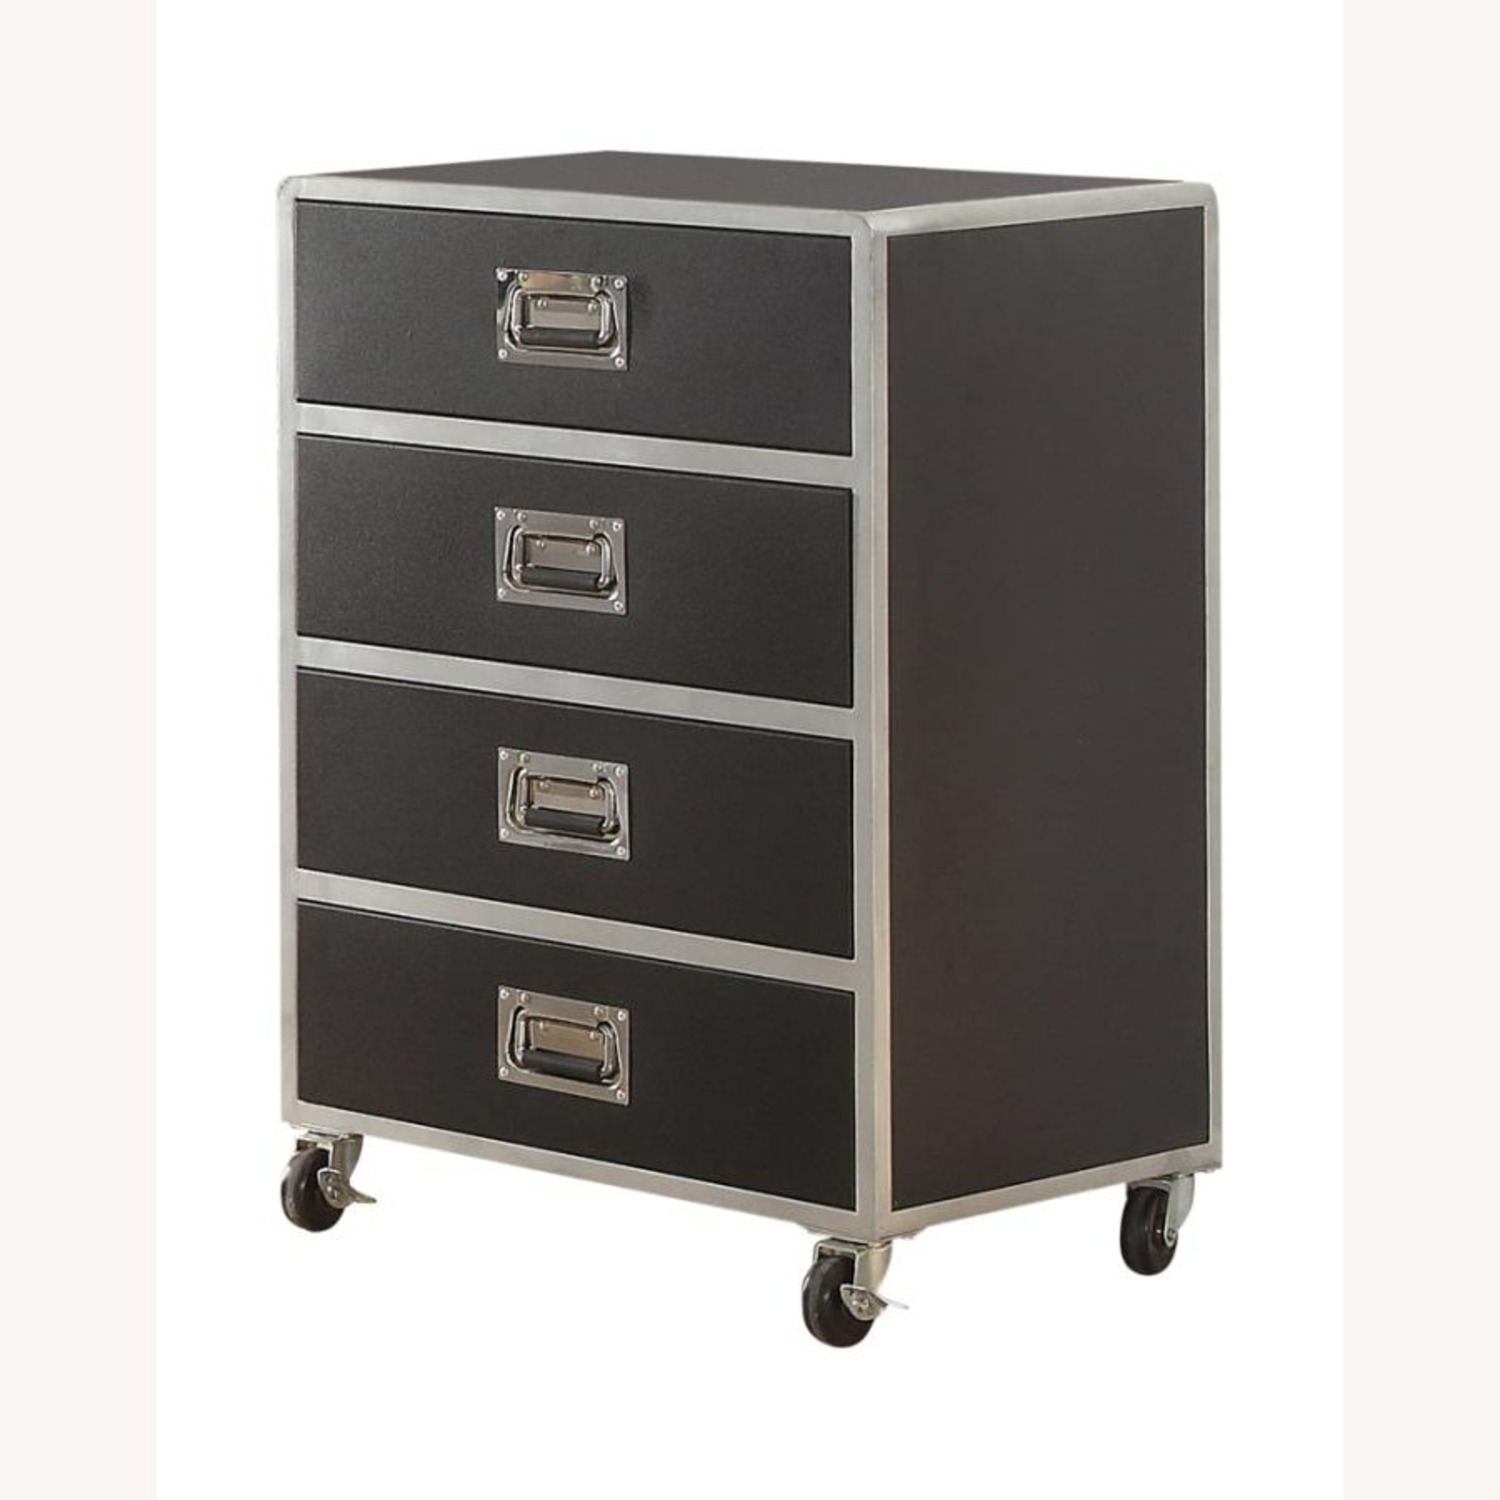 Chest In Black & Silver Finish W/ Lockable Casters - image-1